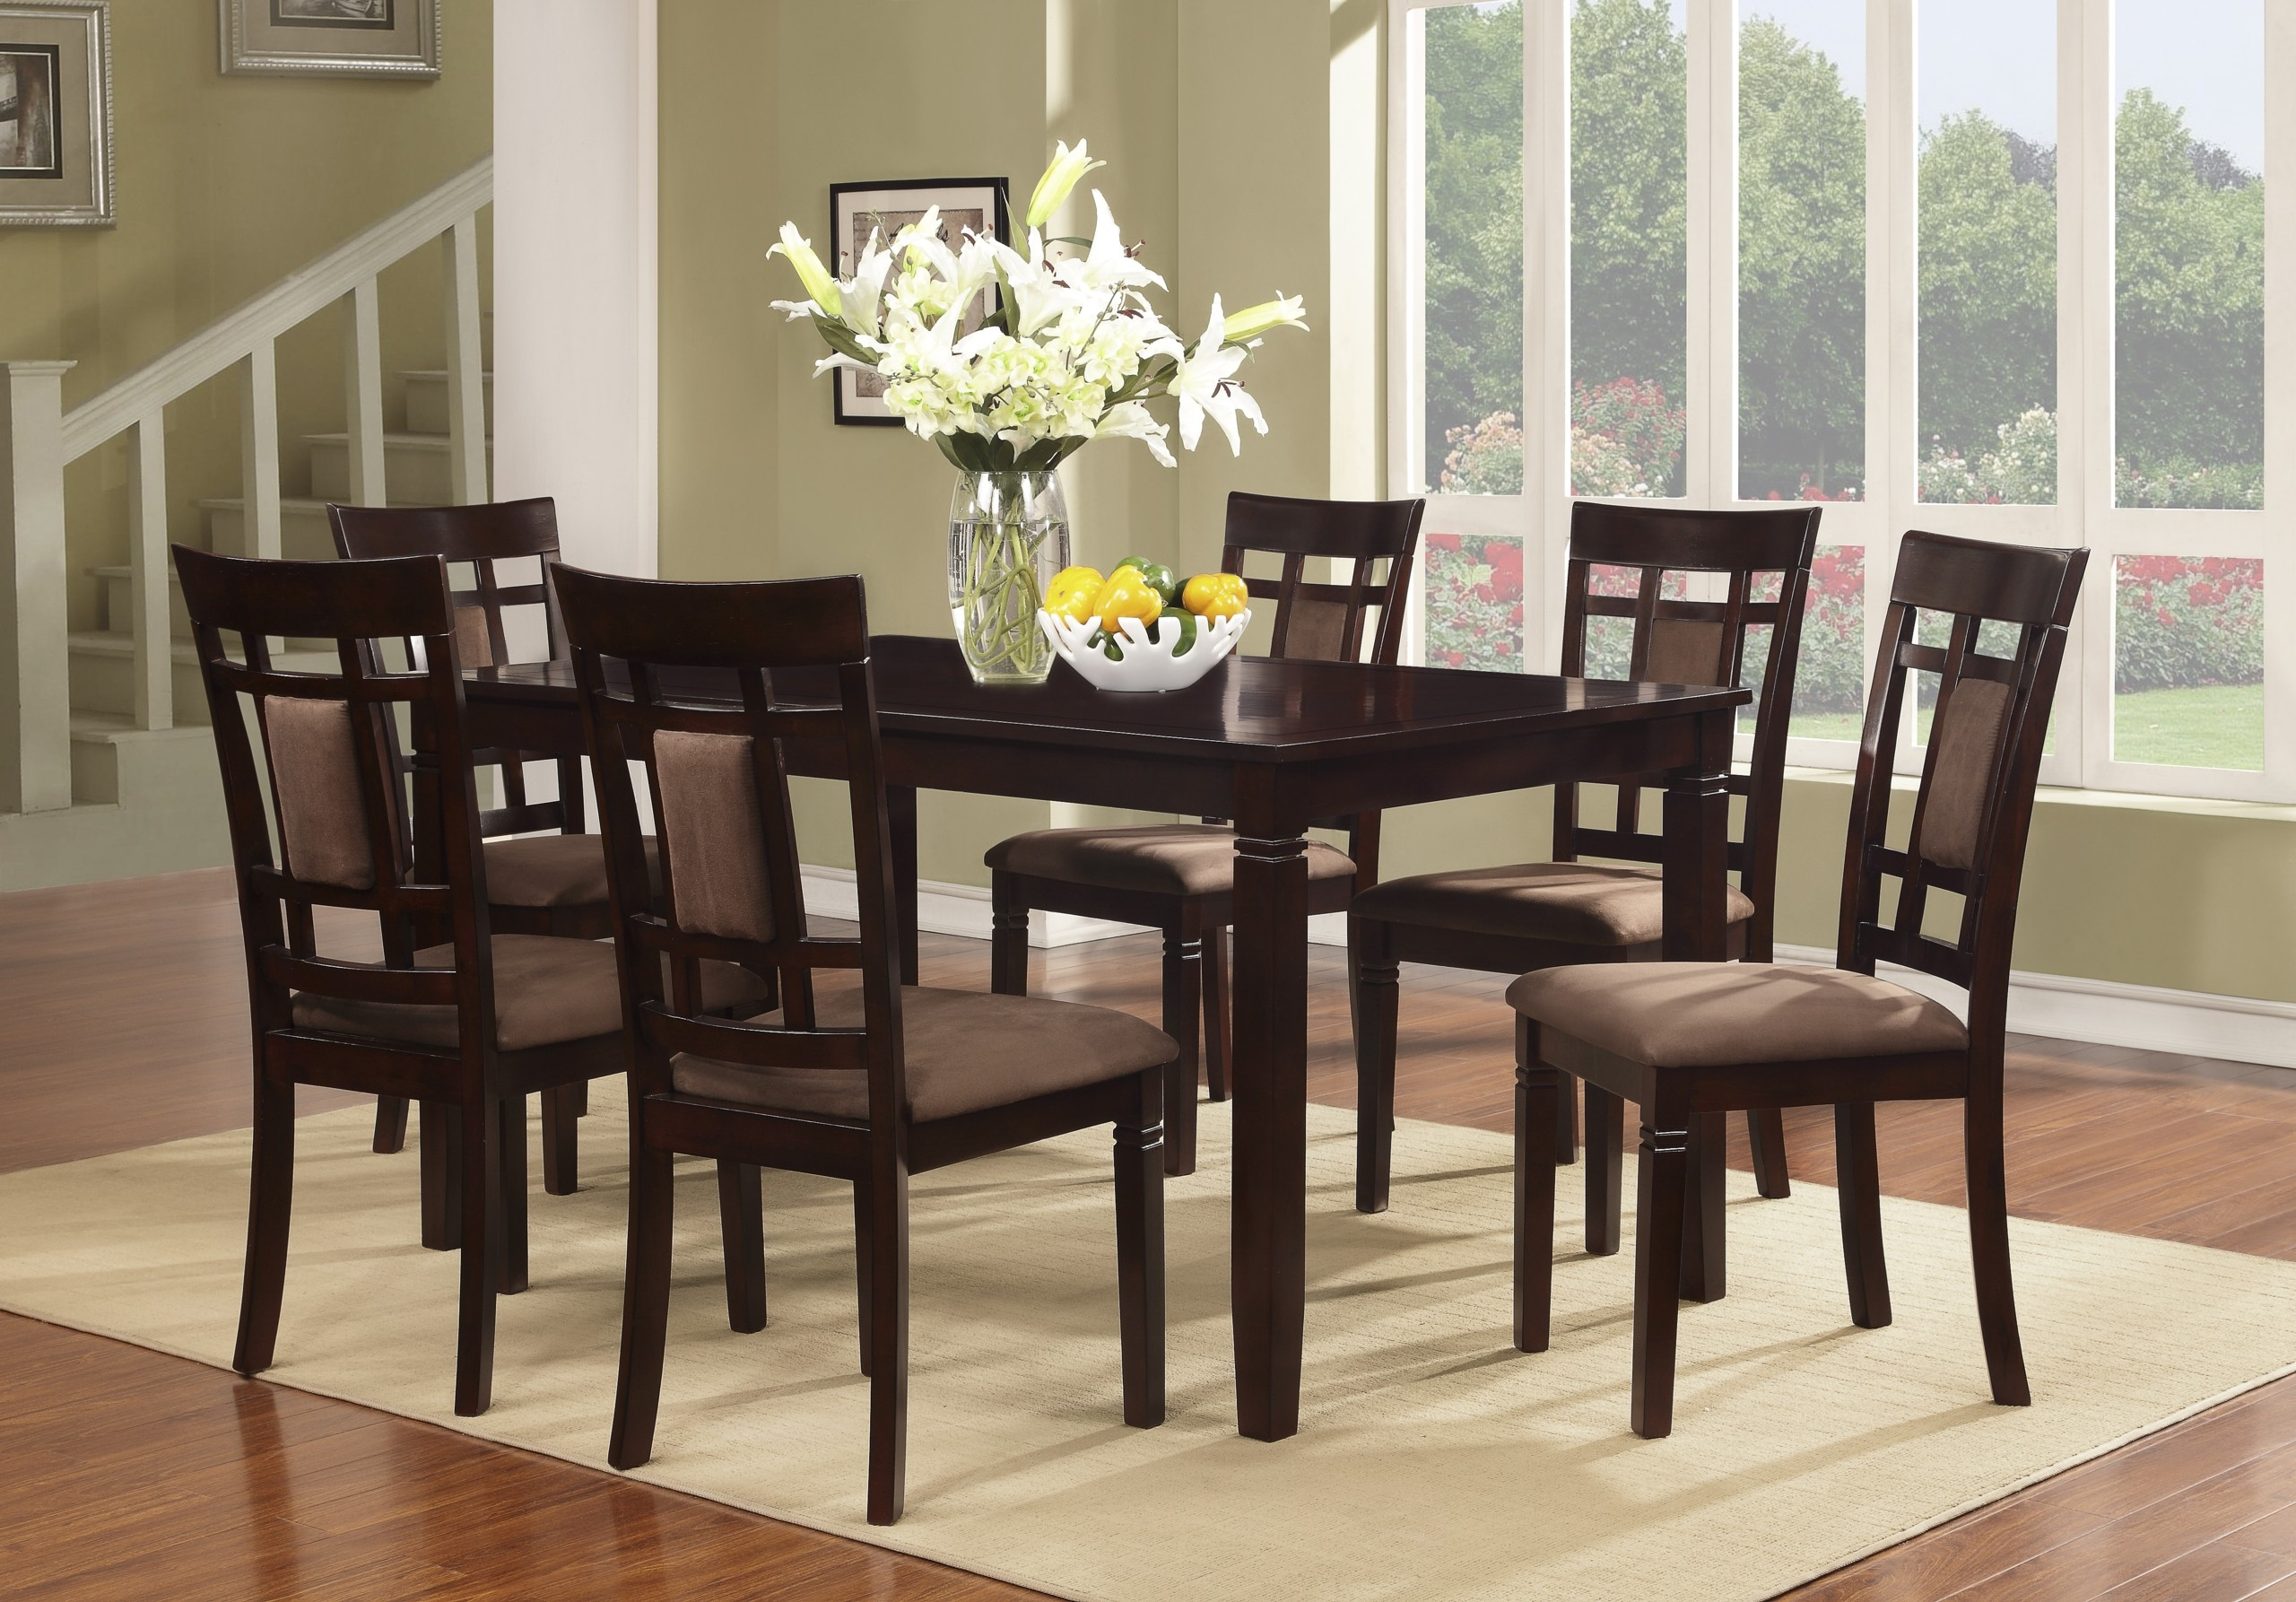 Picture of: Wood Dining Chairs Ideas On Foter